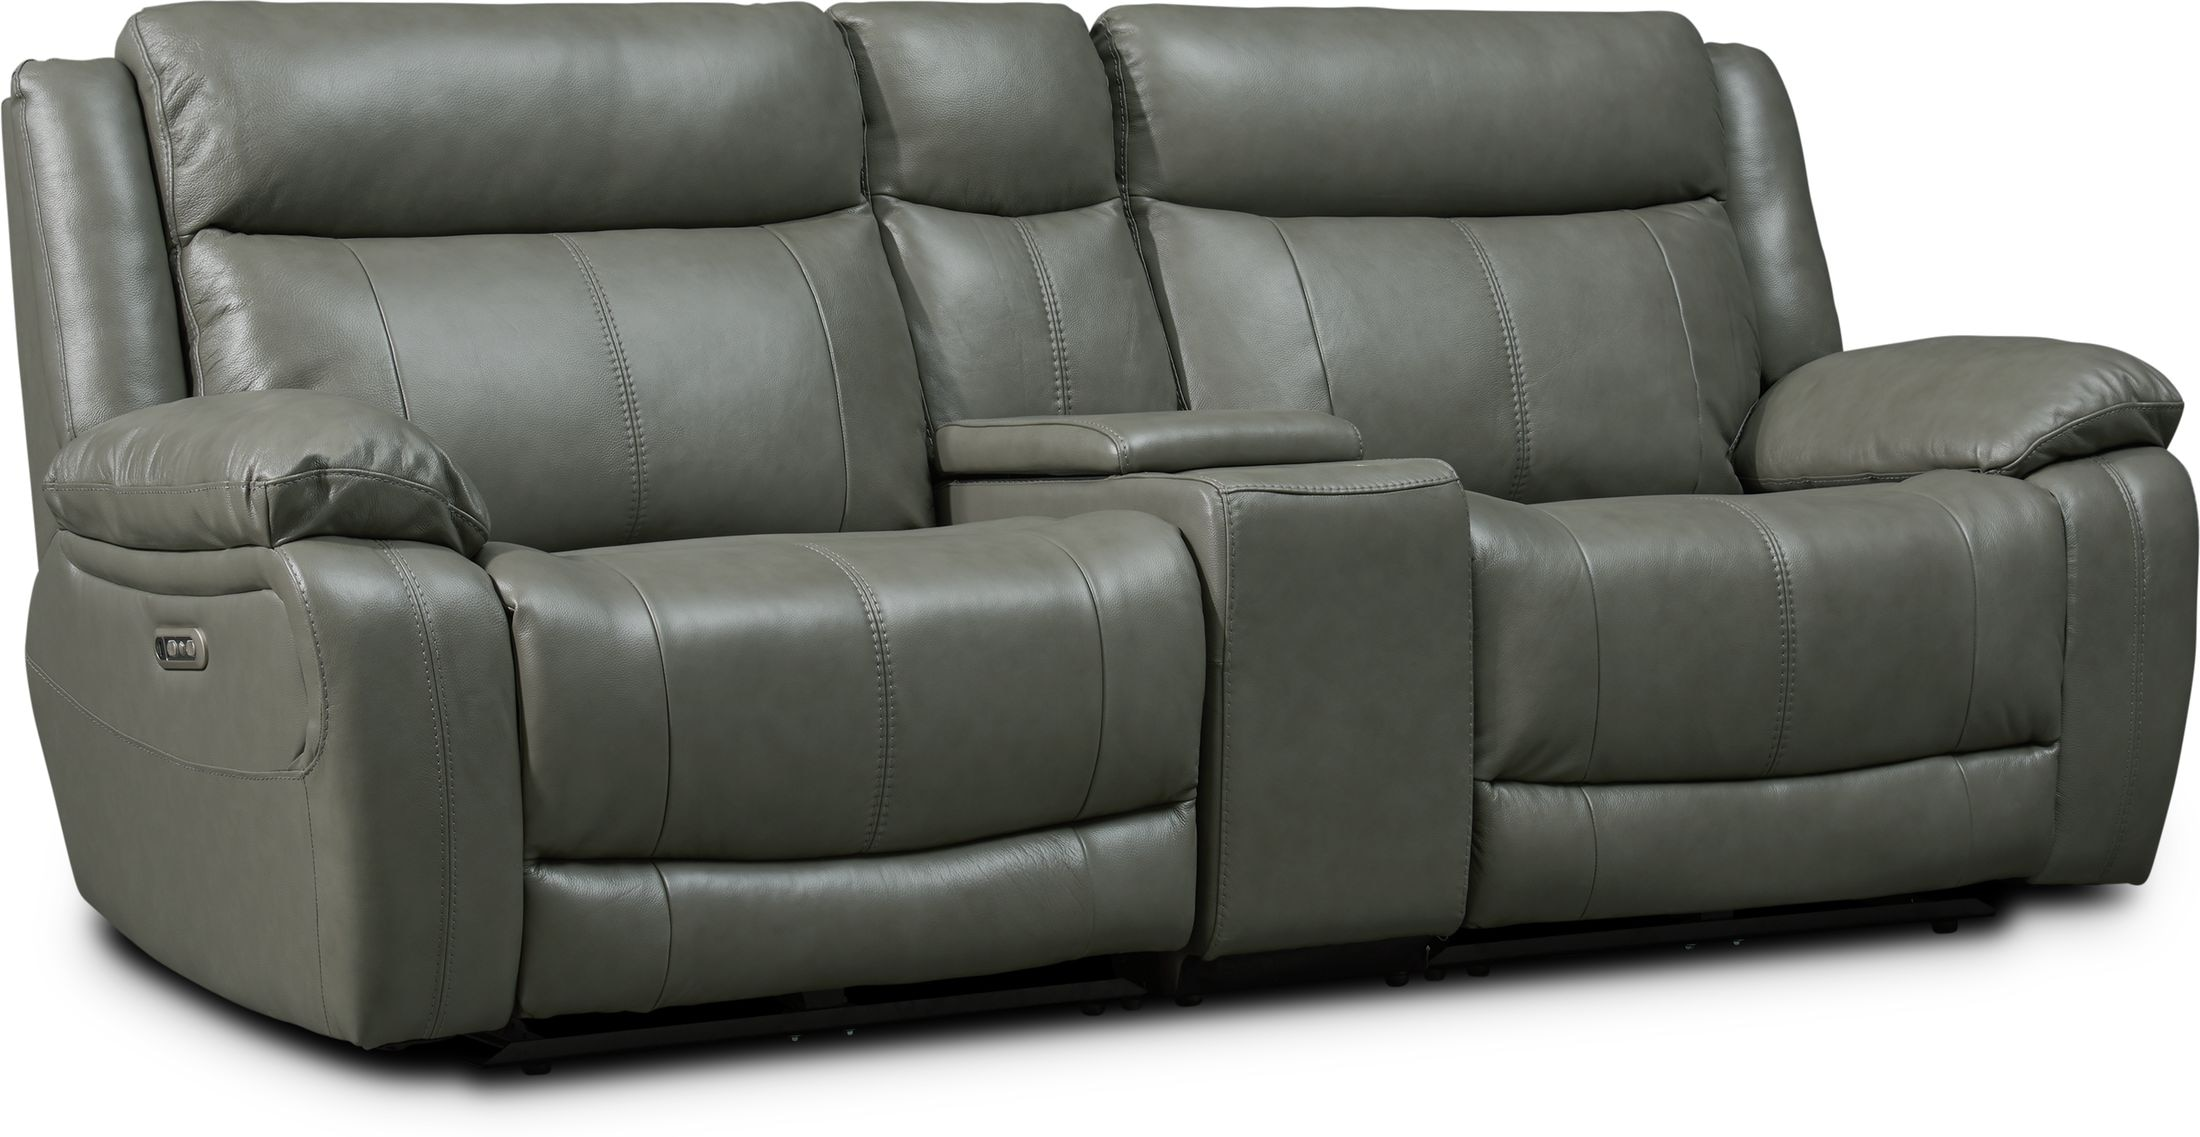 Living Room Furniture - Vince 3-Piece Dual-Power Reclining Sofa with Console